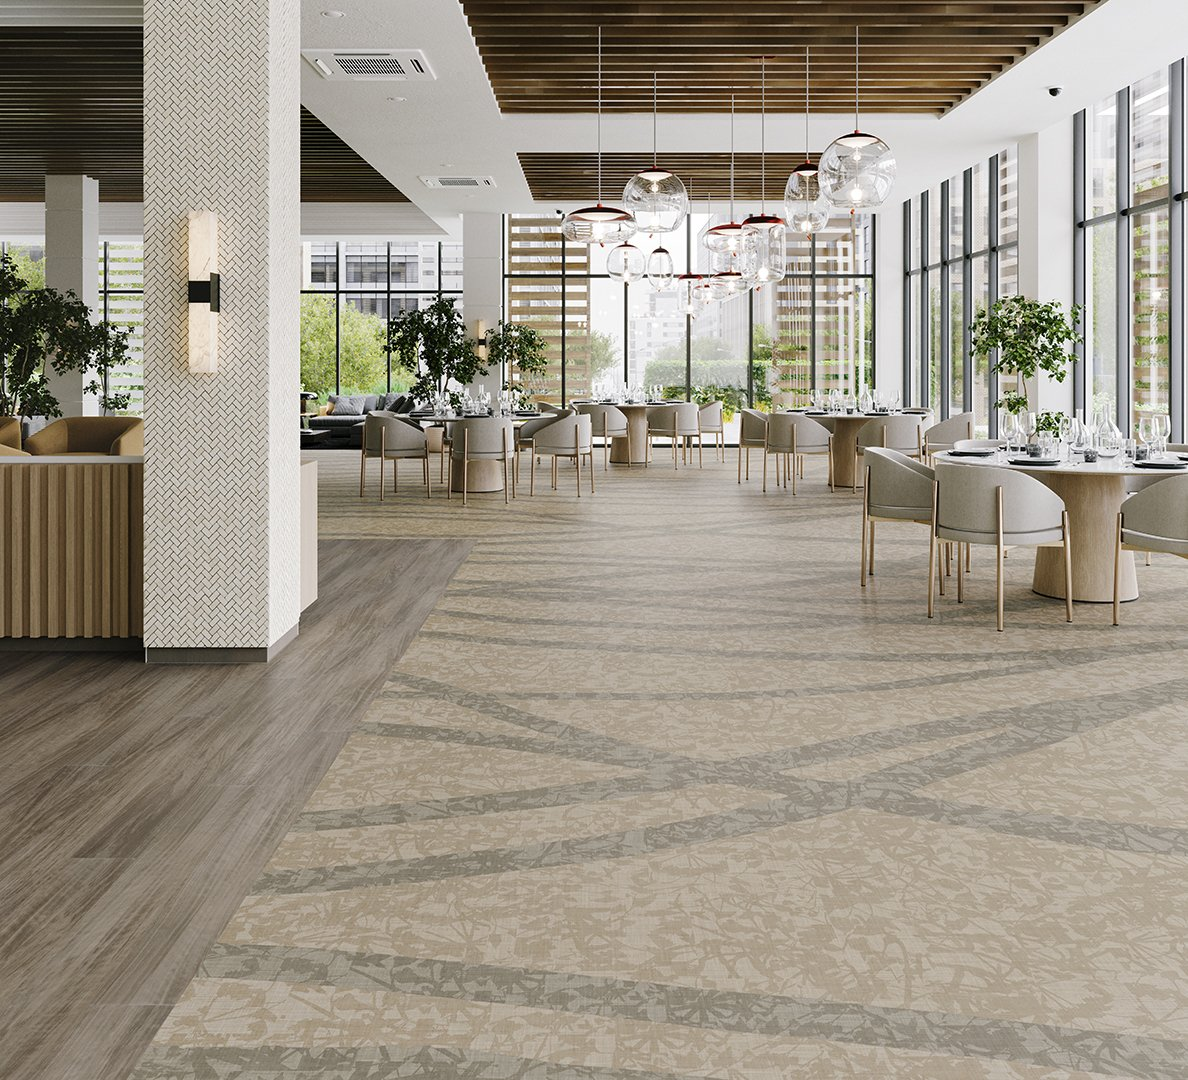 Mannington Commercial Resilient sheet vinyl flooring senior living MAN_Bloom_Wildflower_Harvest_Shade_ManningtonSelect_ VintageWalnut_Hackshaw